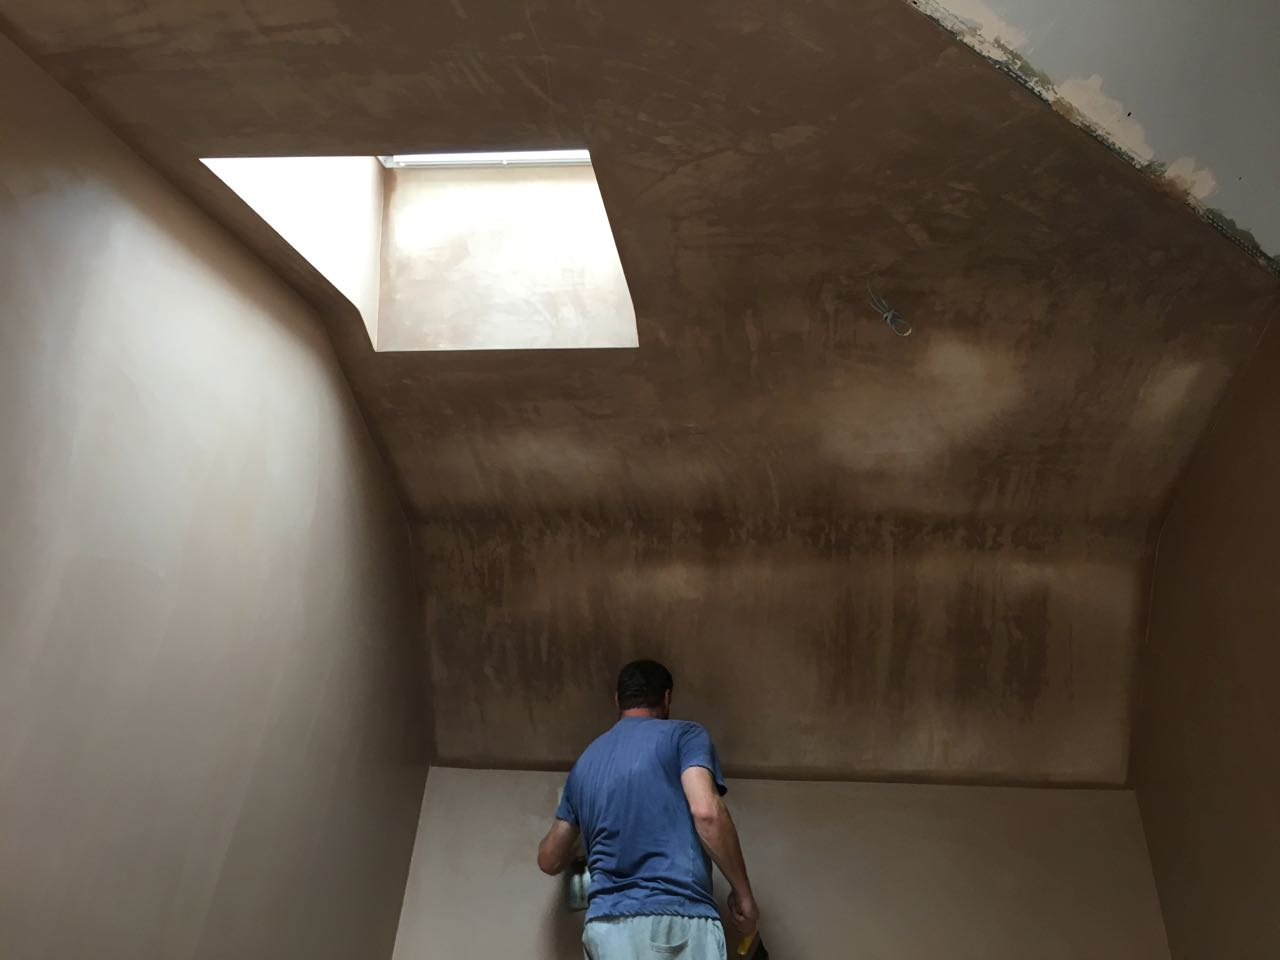 Bedroom ceiling being plaster skimmed